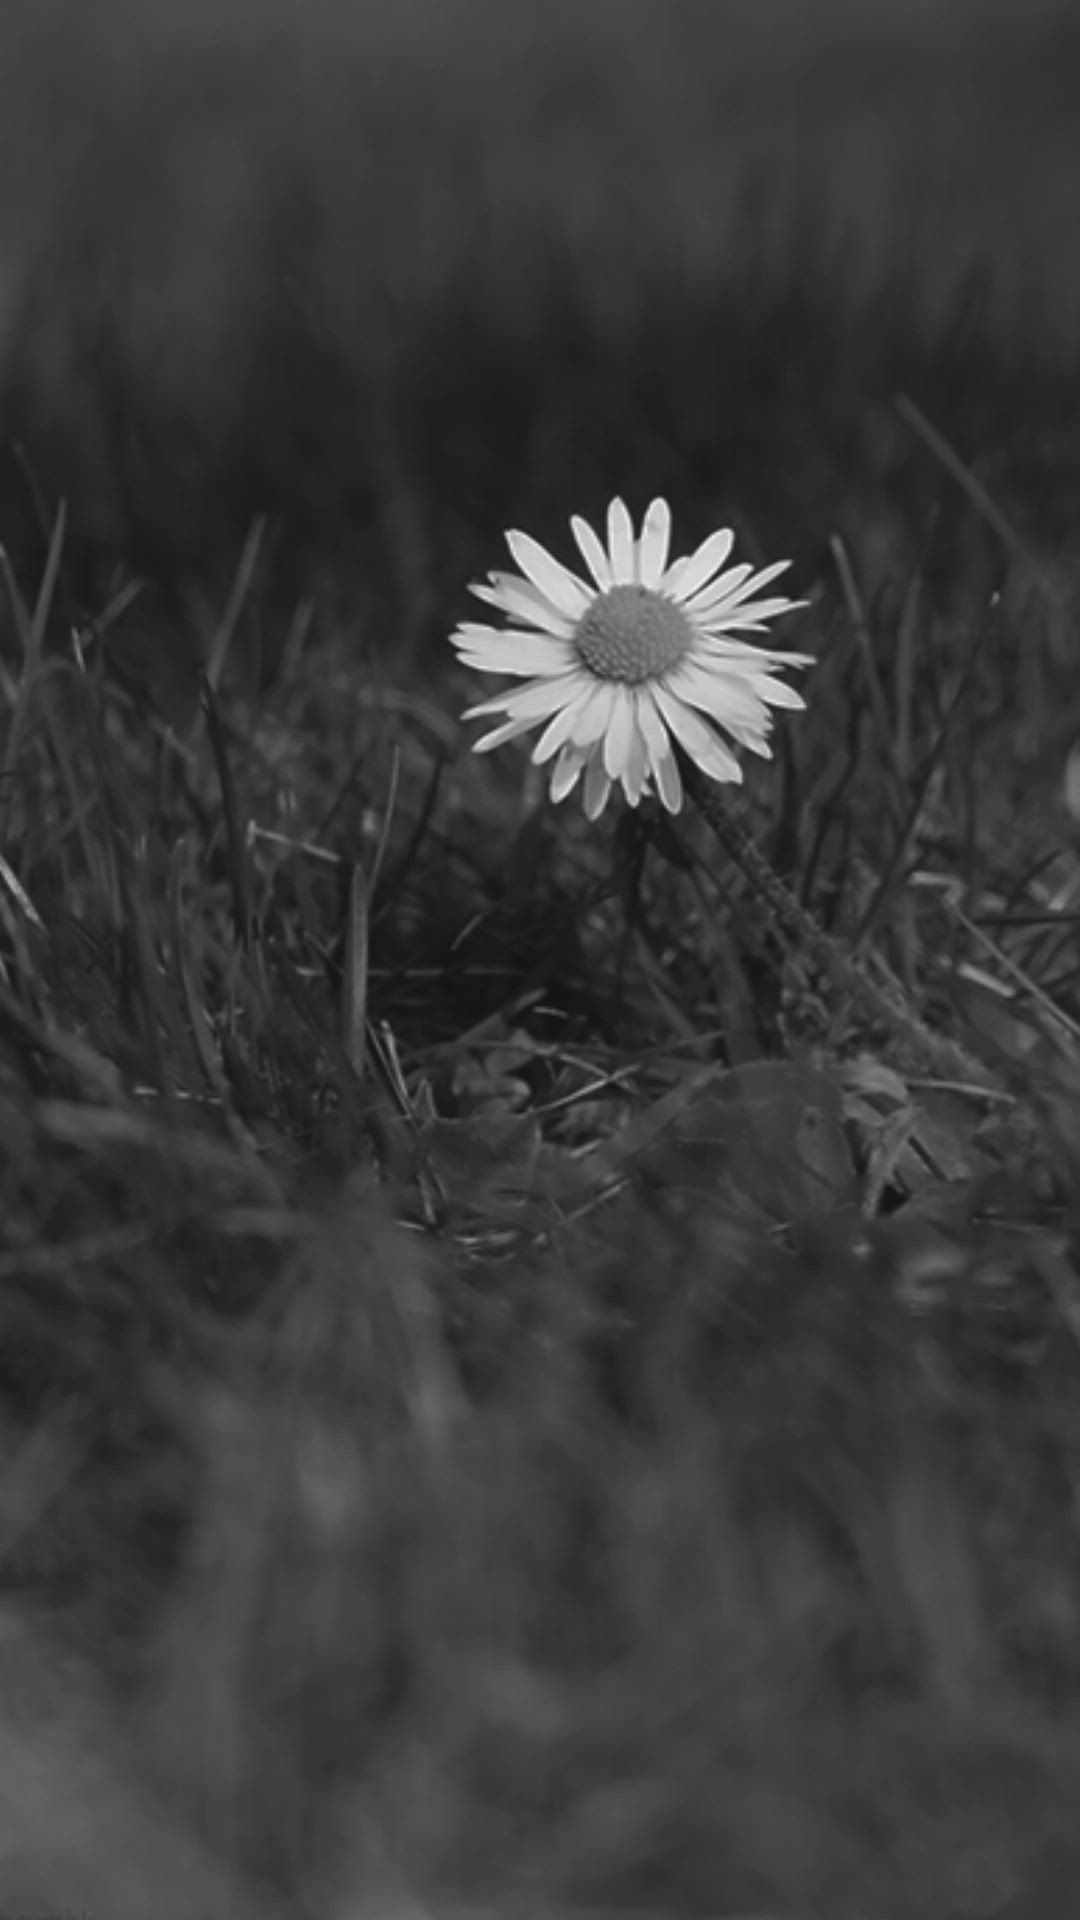 Meadows Landscape Black And White Daisy Daisy Paysage Live Food